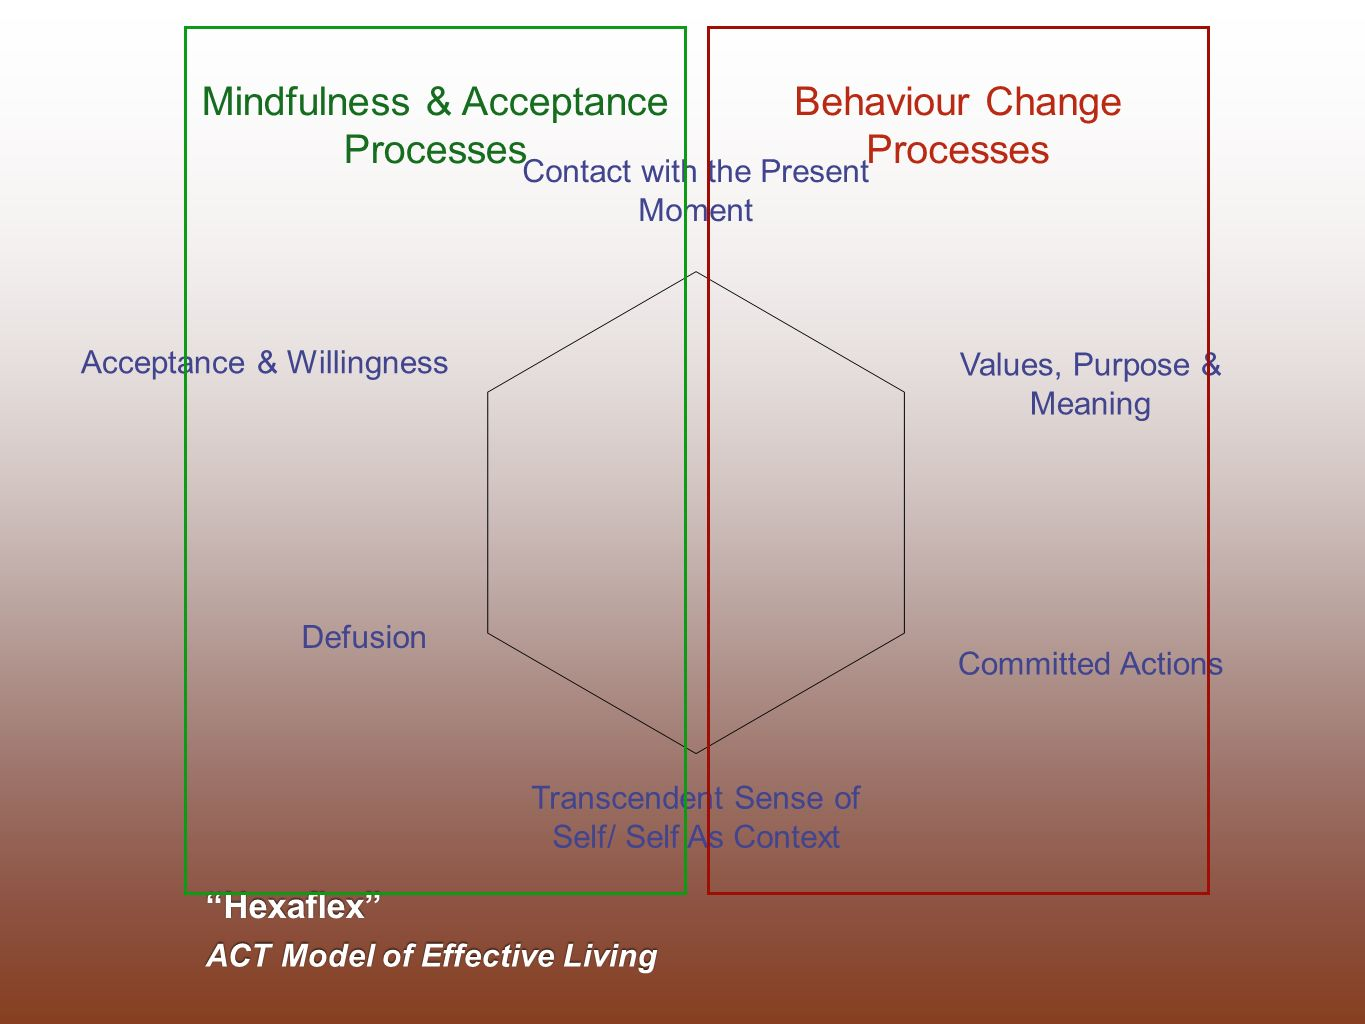 Hexaflex ACT Model of Effective Living Values, Purpose & Meaning Defusion Committed Actions Contact with the Present Moment Acceptance & Willingness T